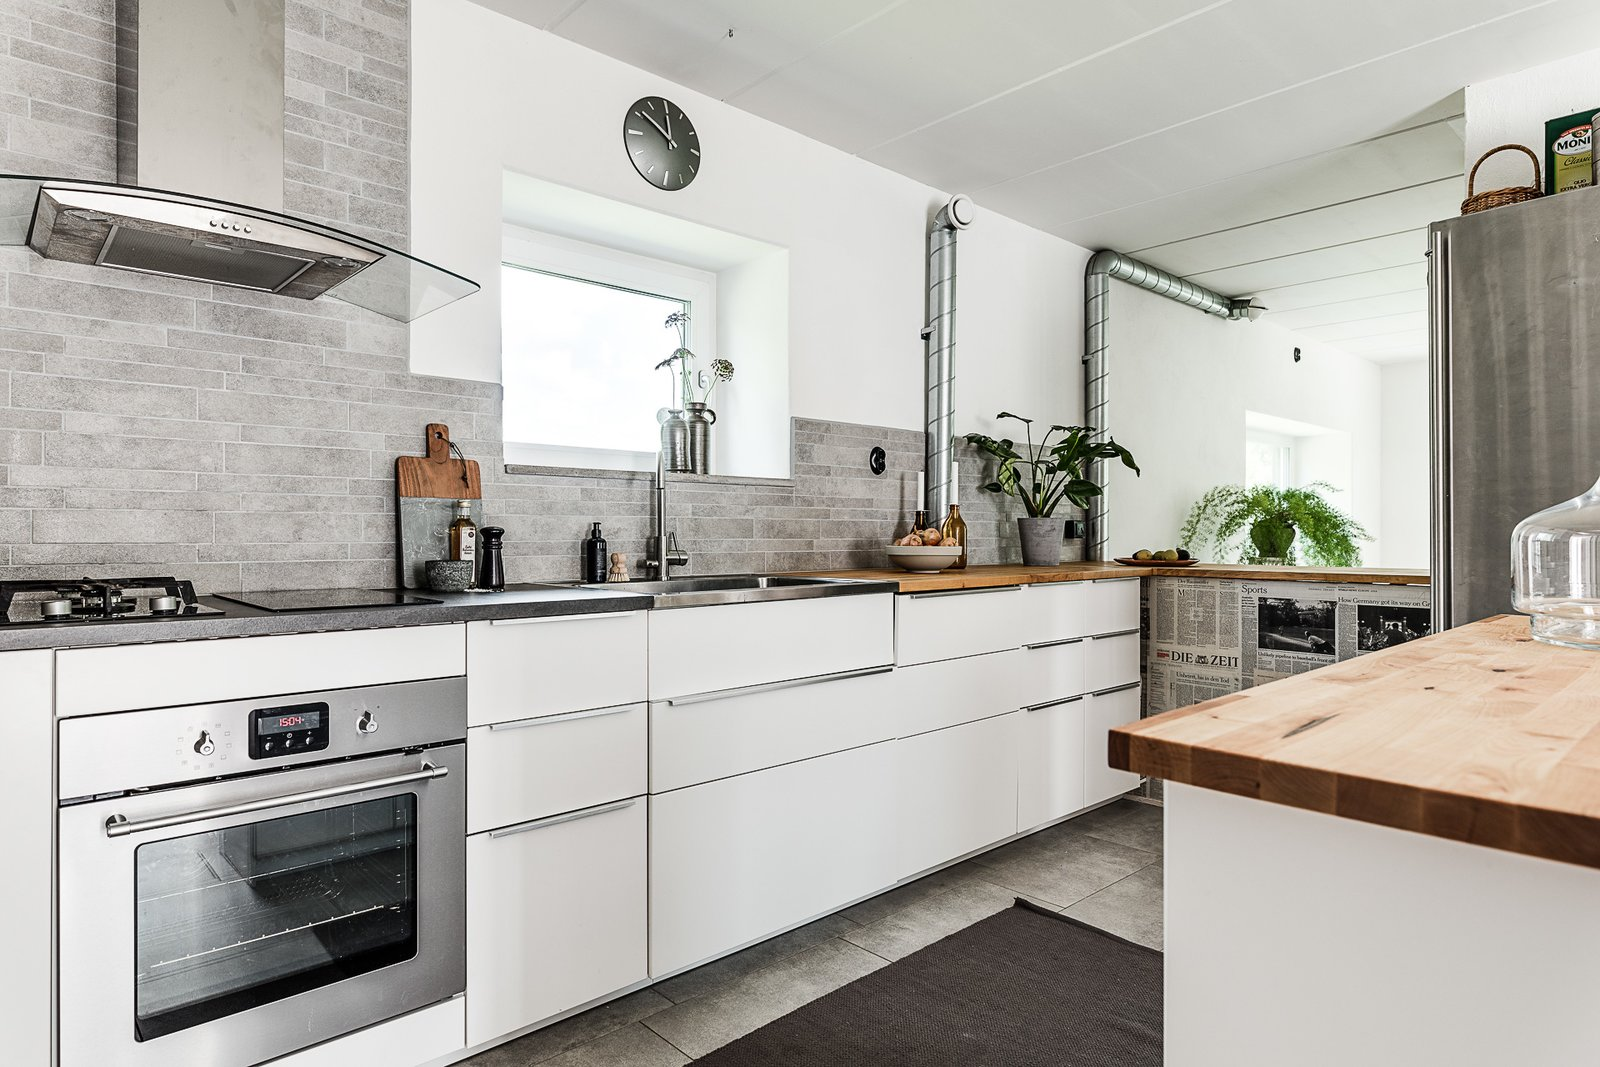 Kitchen, White Cabinet, Wood Counter, Refrigerator, Stone Tile Backsplashe, Range, and Drop In Sink  Photo 5 of 12 in Make This Enchanting Swedish Greenhouse Your Home For $864K